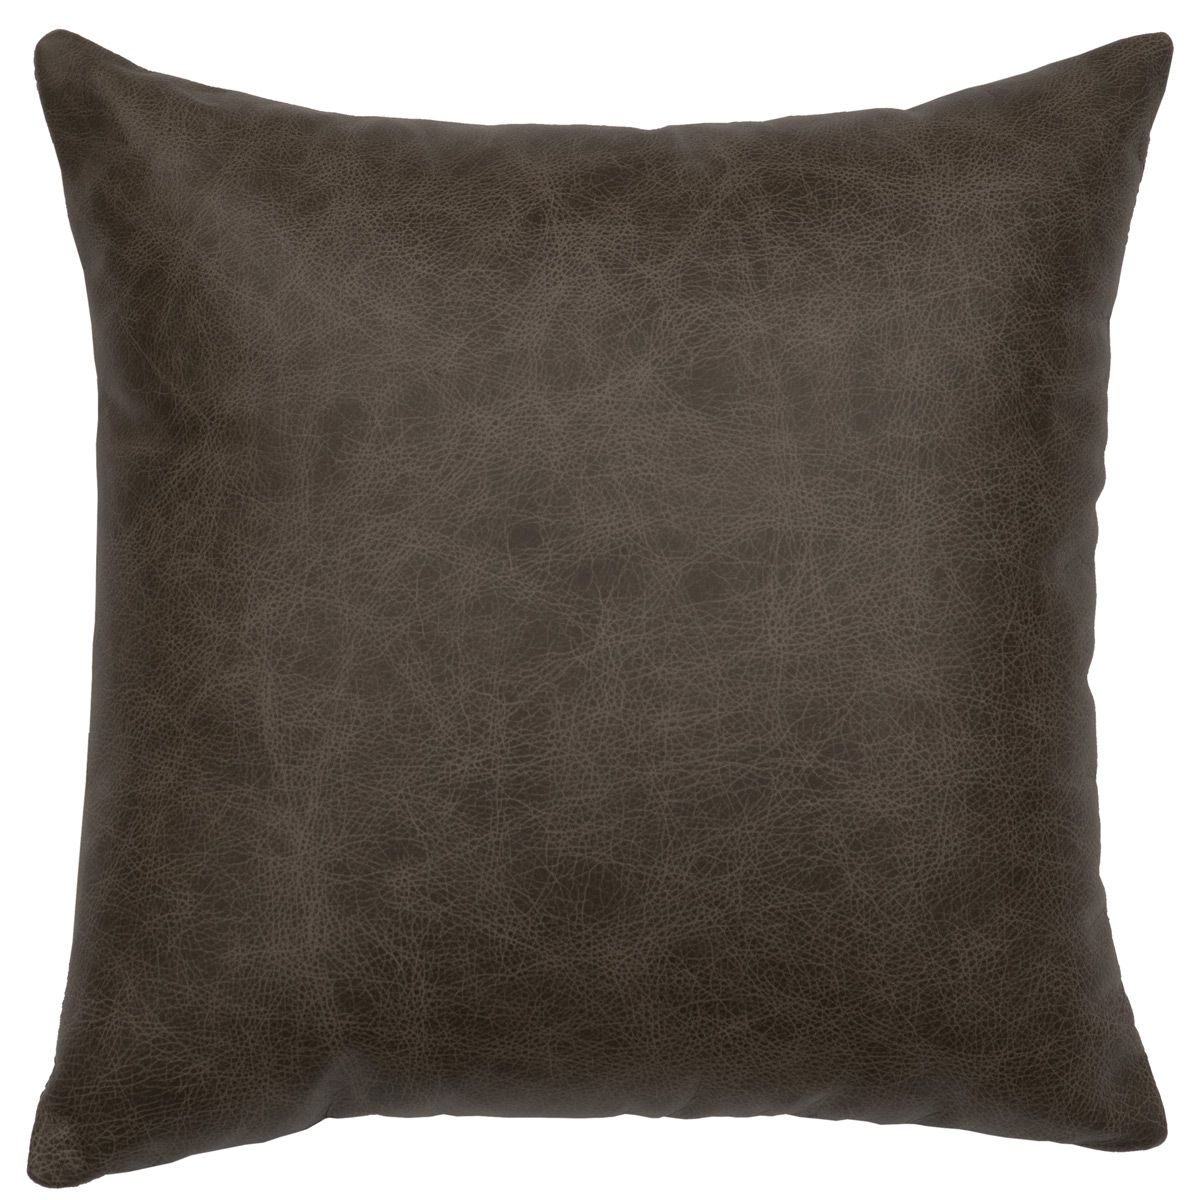 Luminaria Leather Pillow - Fabric Back - 16 x 16